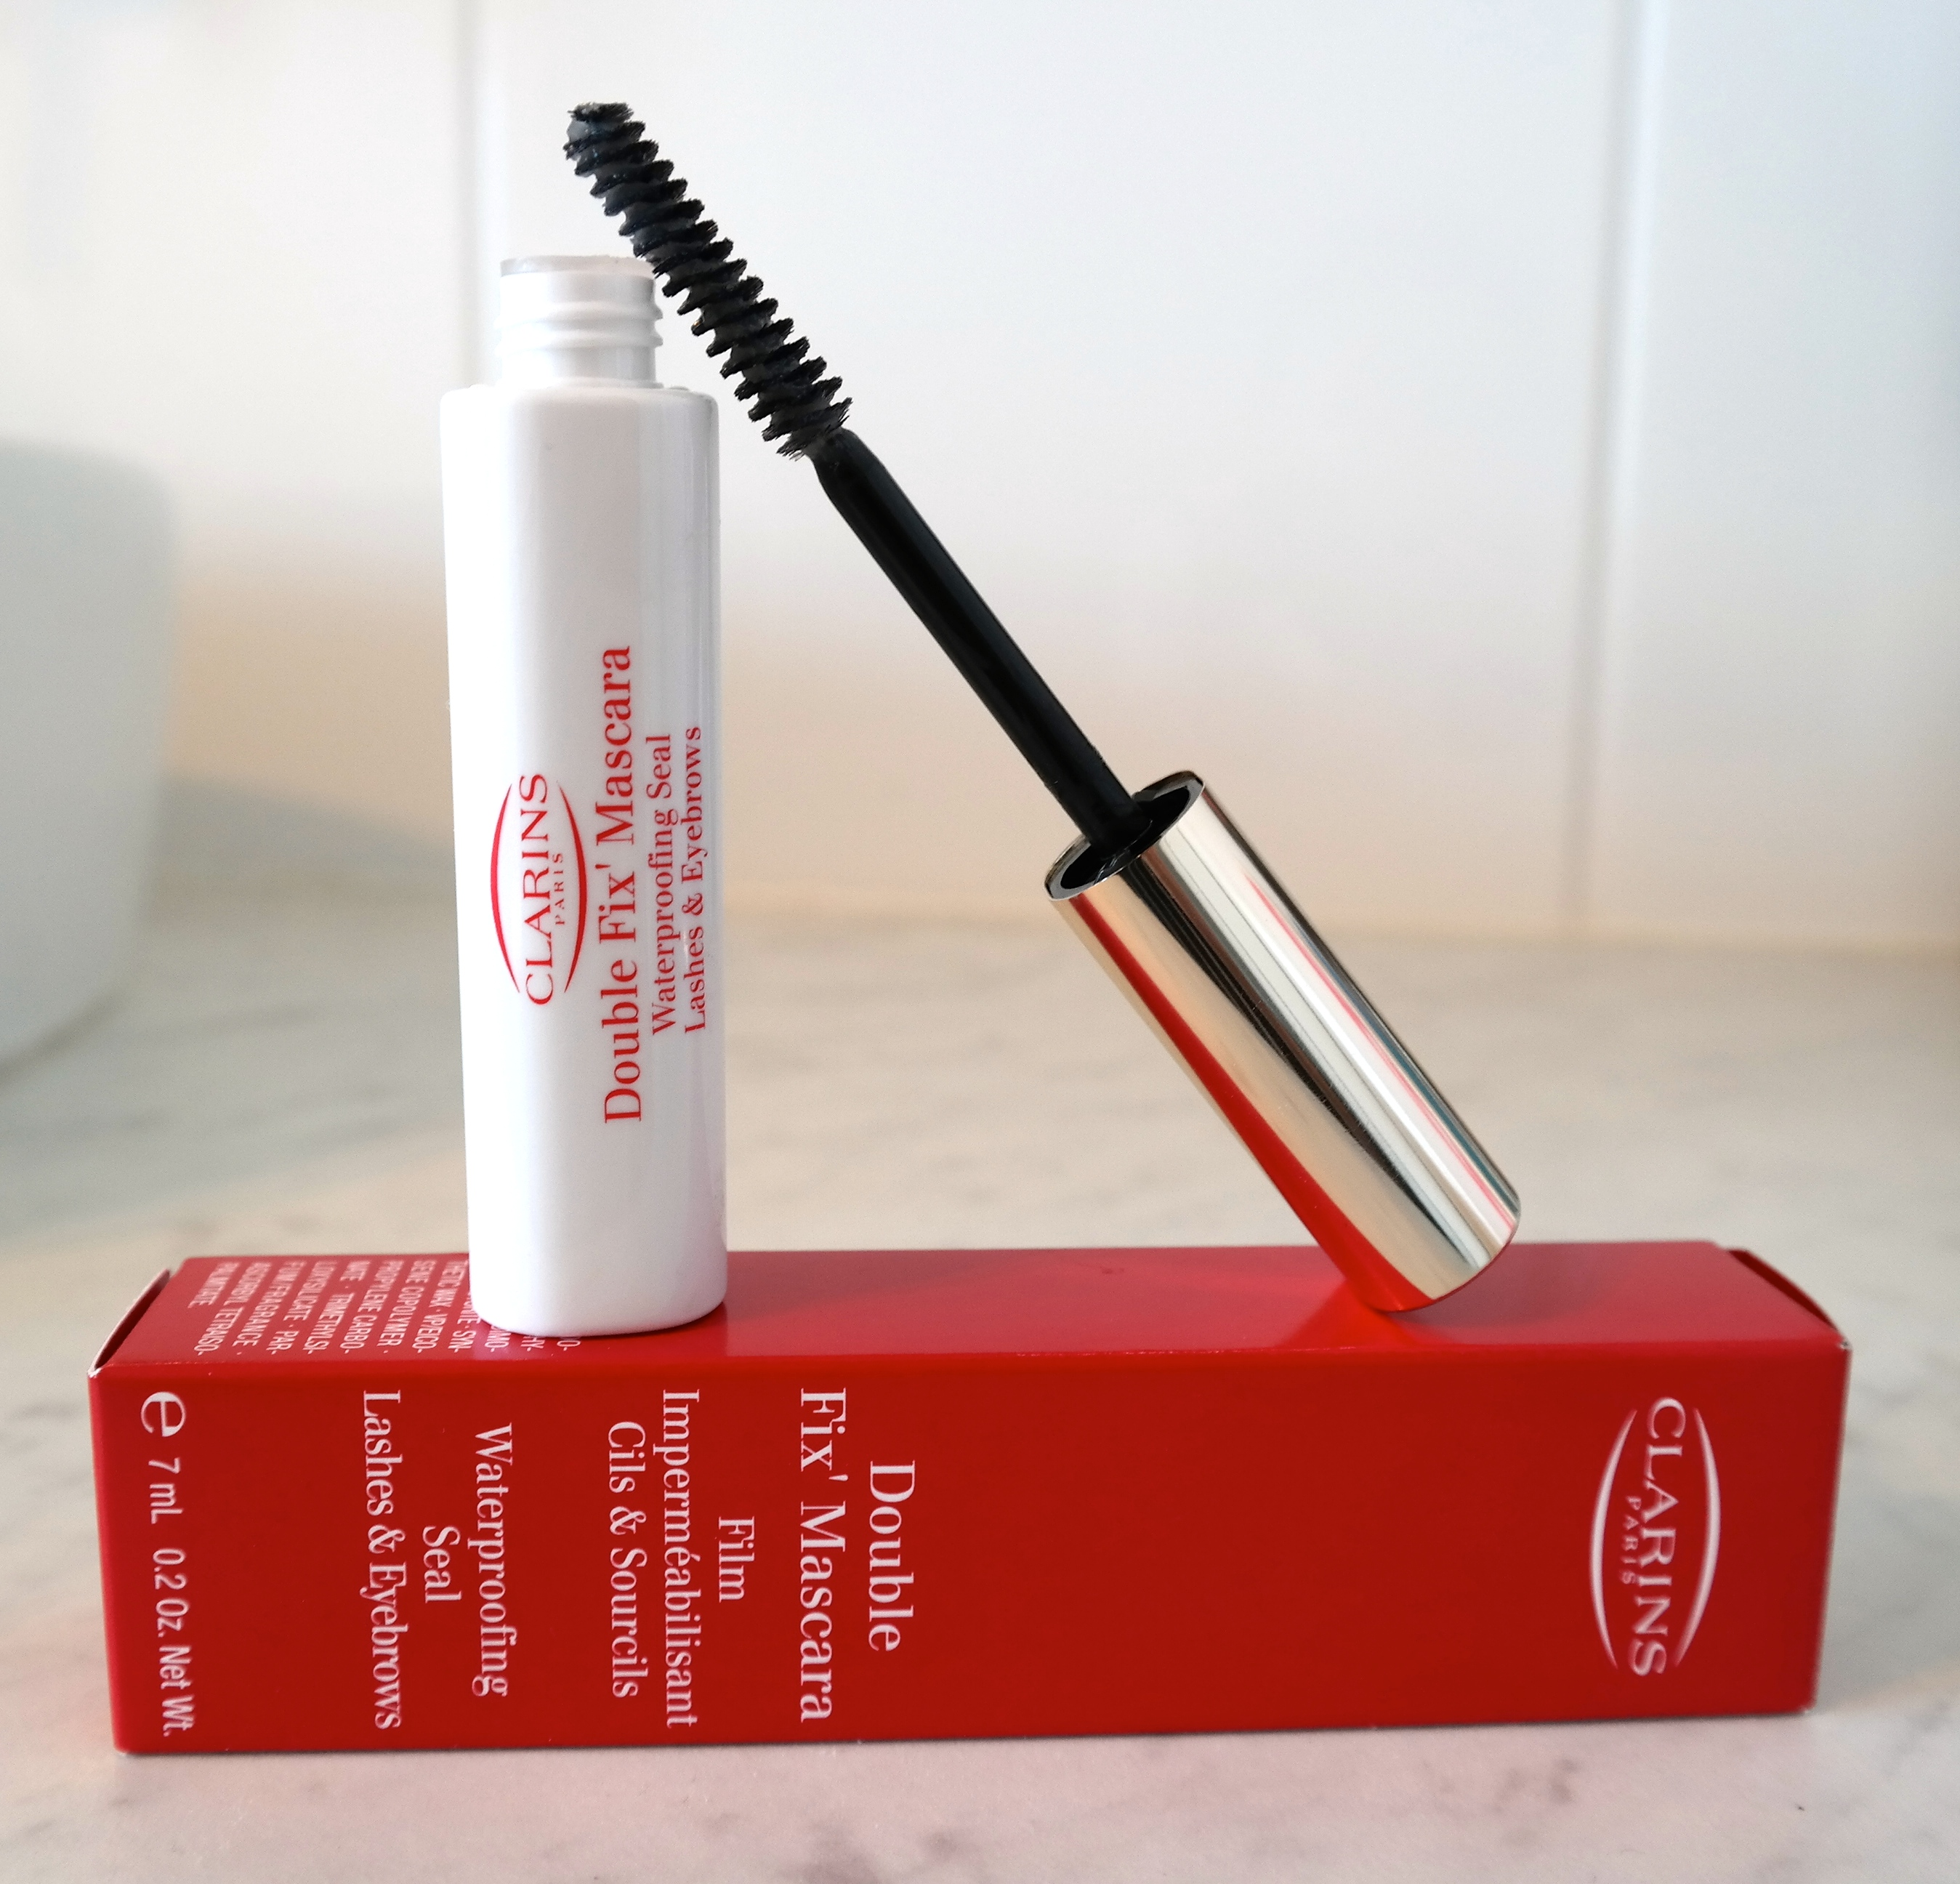 Double Fix Mascara by Clarins #7